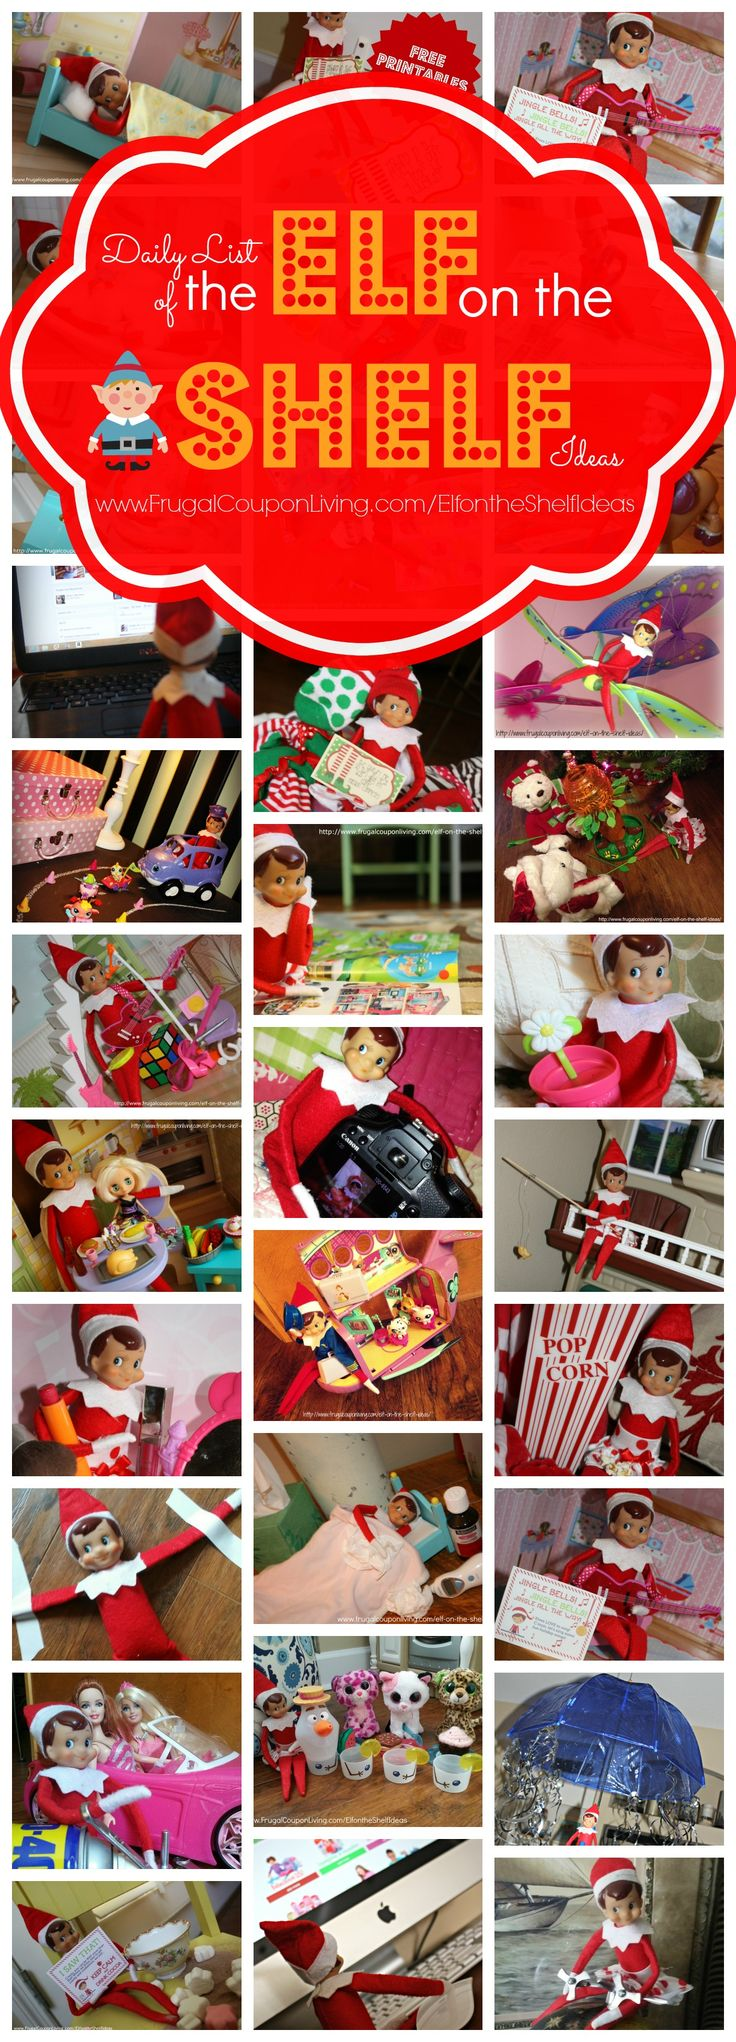 GIGANTIC Daily Elf on the Shelf Ideas all November and December plus FREE Printable Elf on the Shelf Printable Notes and FREE Bendable Elf on the Shelf Tutorial so your Elf can Move. Details on Frugal Coupon Living. http://www.frugalcouponliving.com/elf-on-the-shelf-ideas/